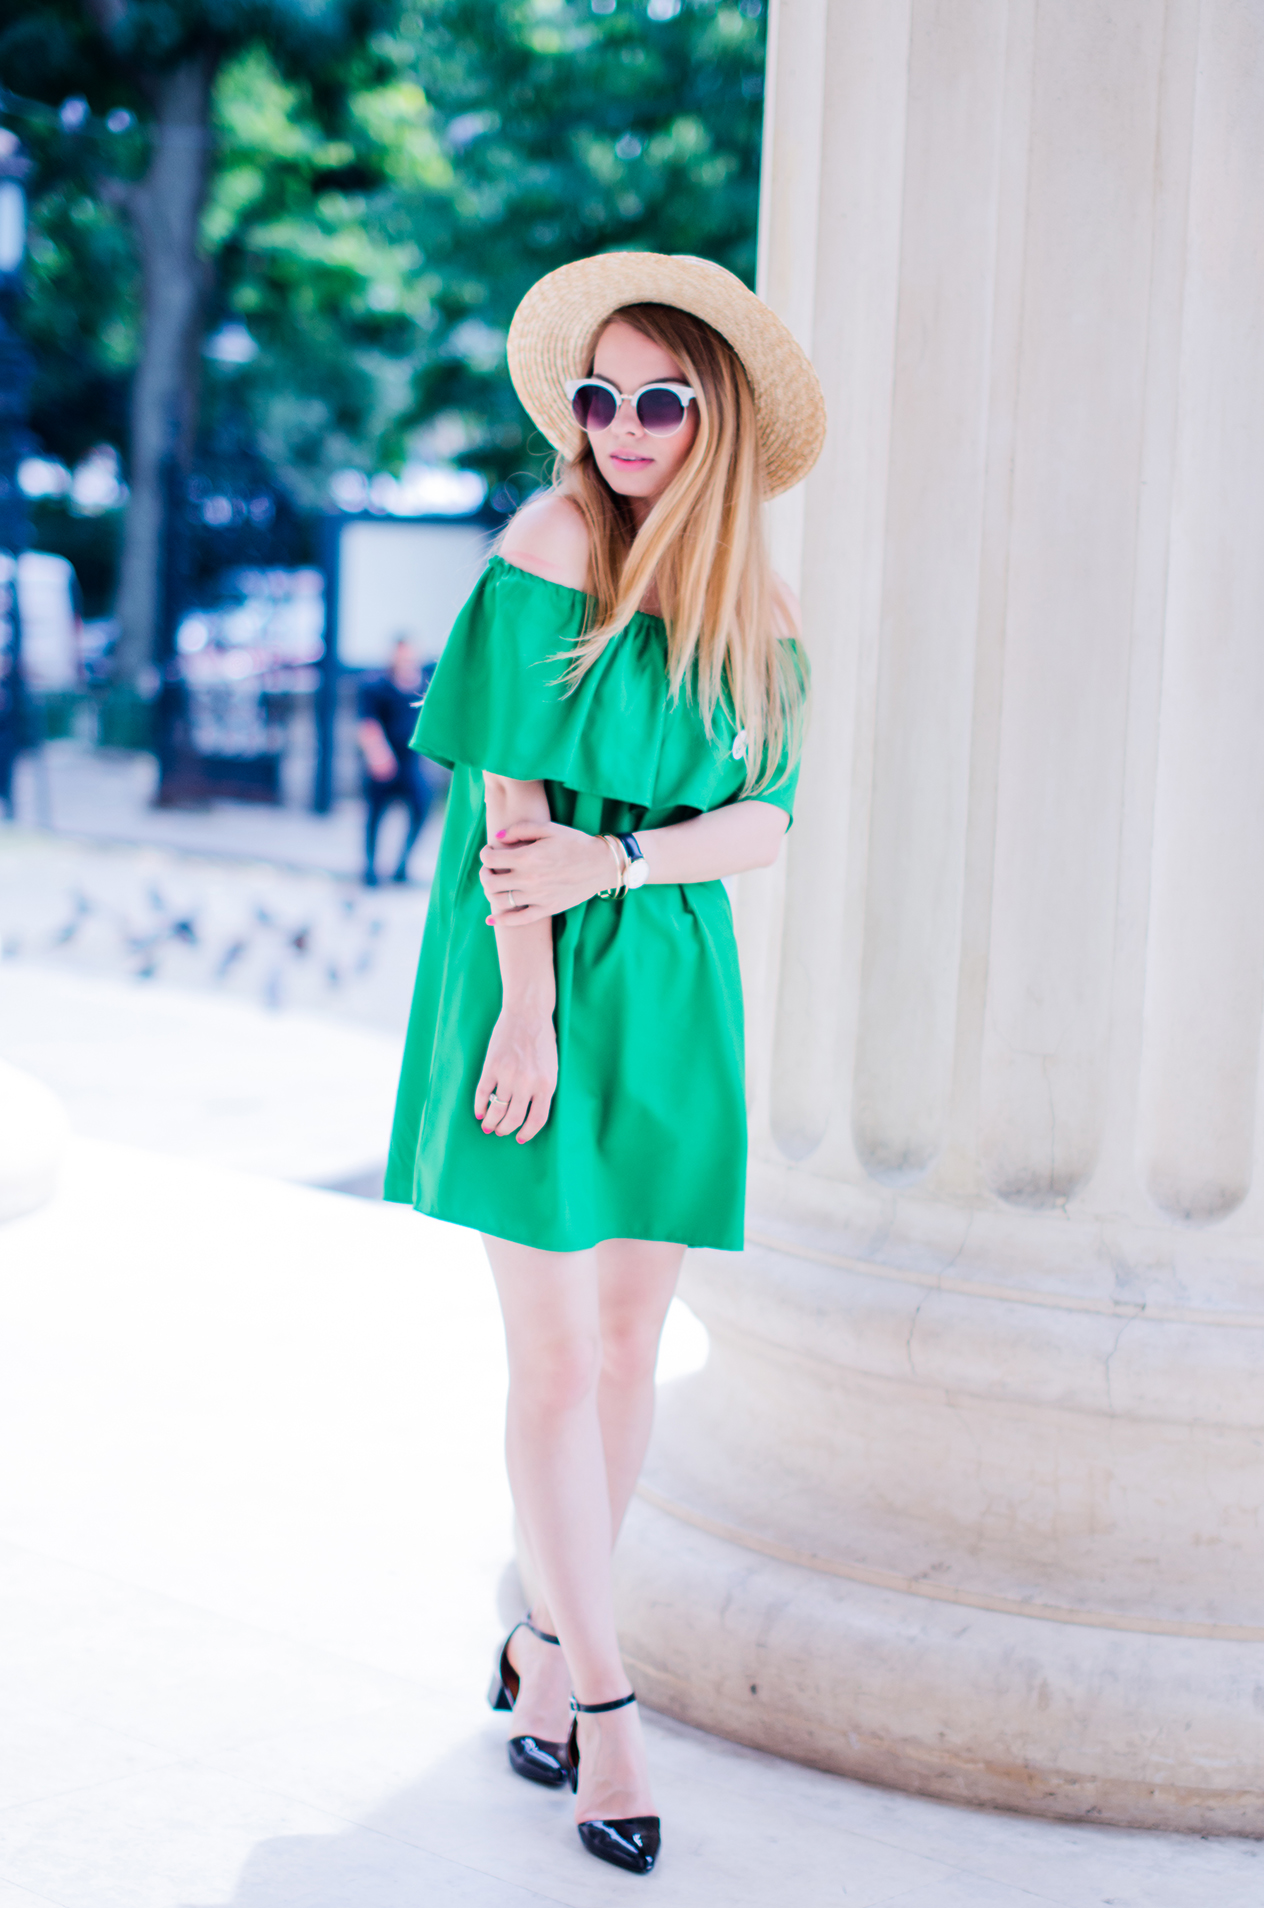 off-shoulder-dress-hm-straw-hat-strappy-shoes (10)